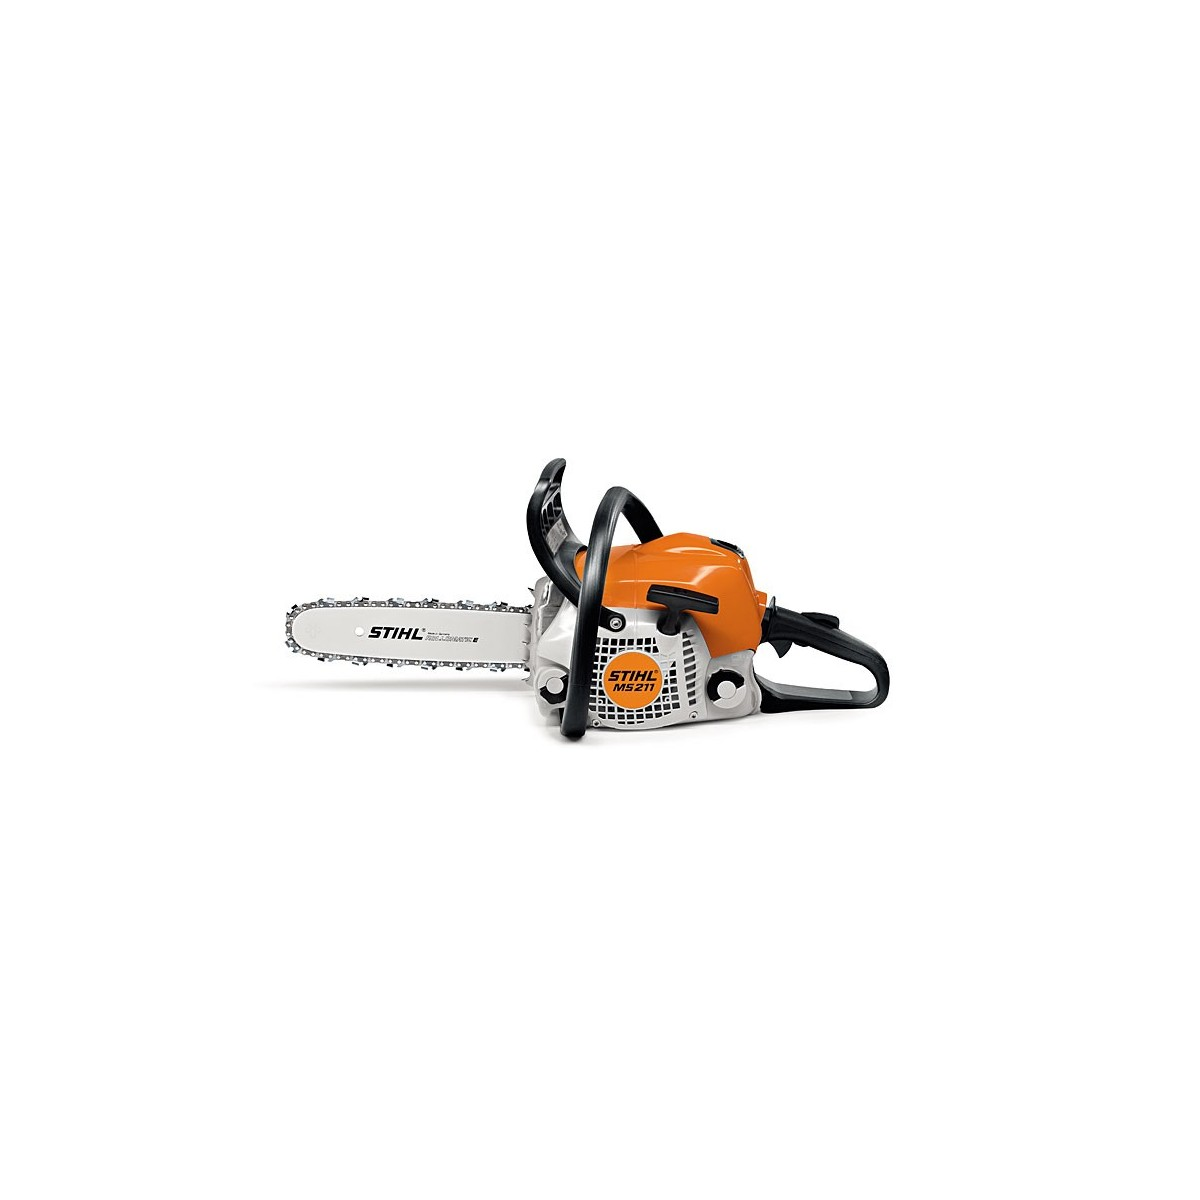 achat tronconneuse stihl ms 21140cm r pmc3 stihl bender motoculture. Black Bedroom Furniture Sets. Home Design Ideas